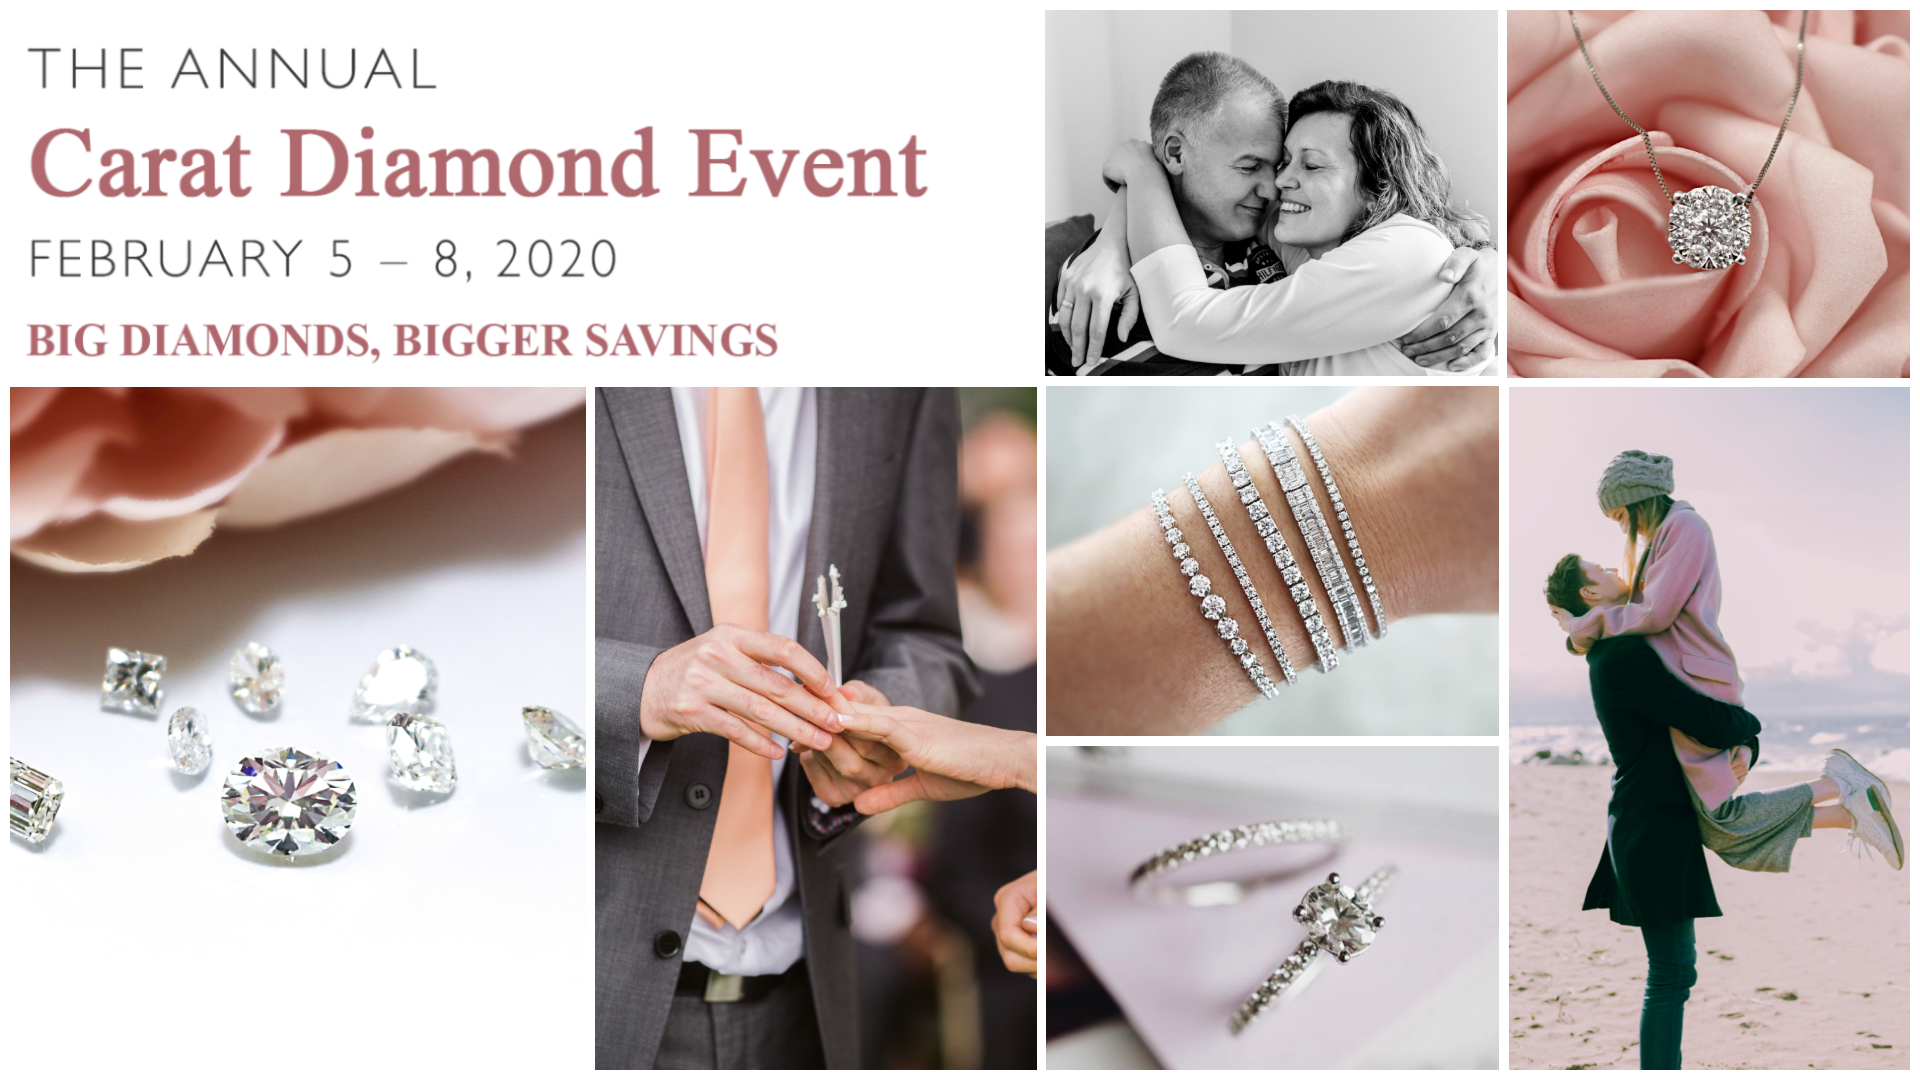 Kelowna diamond engagement rings and diamond jewelry event